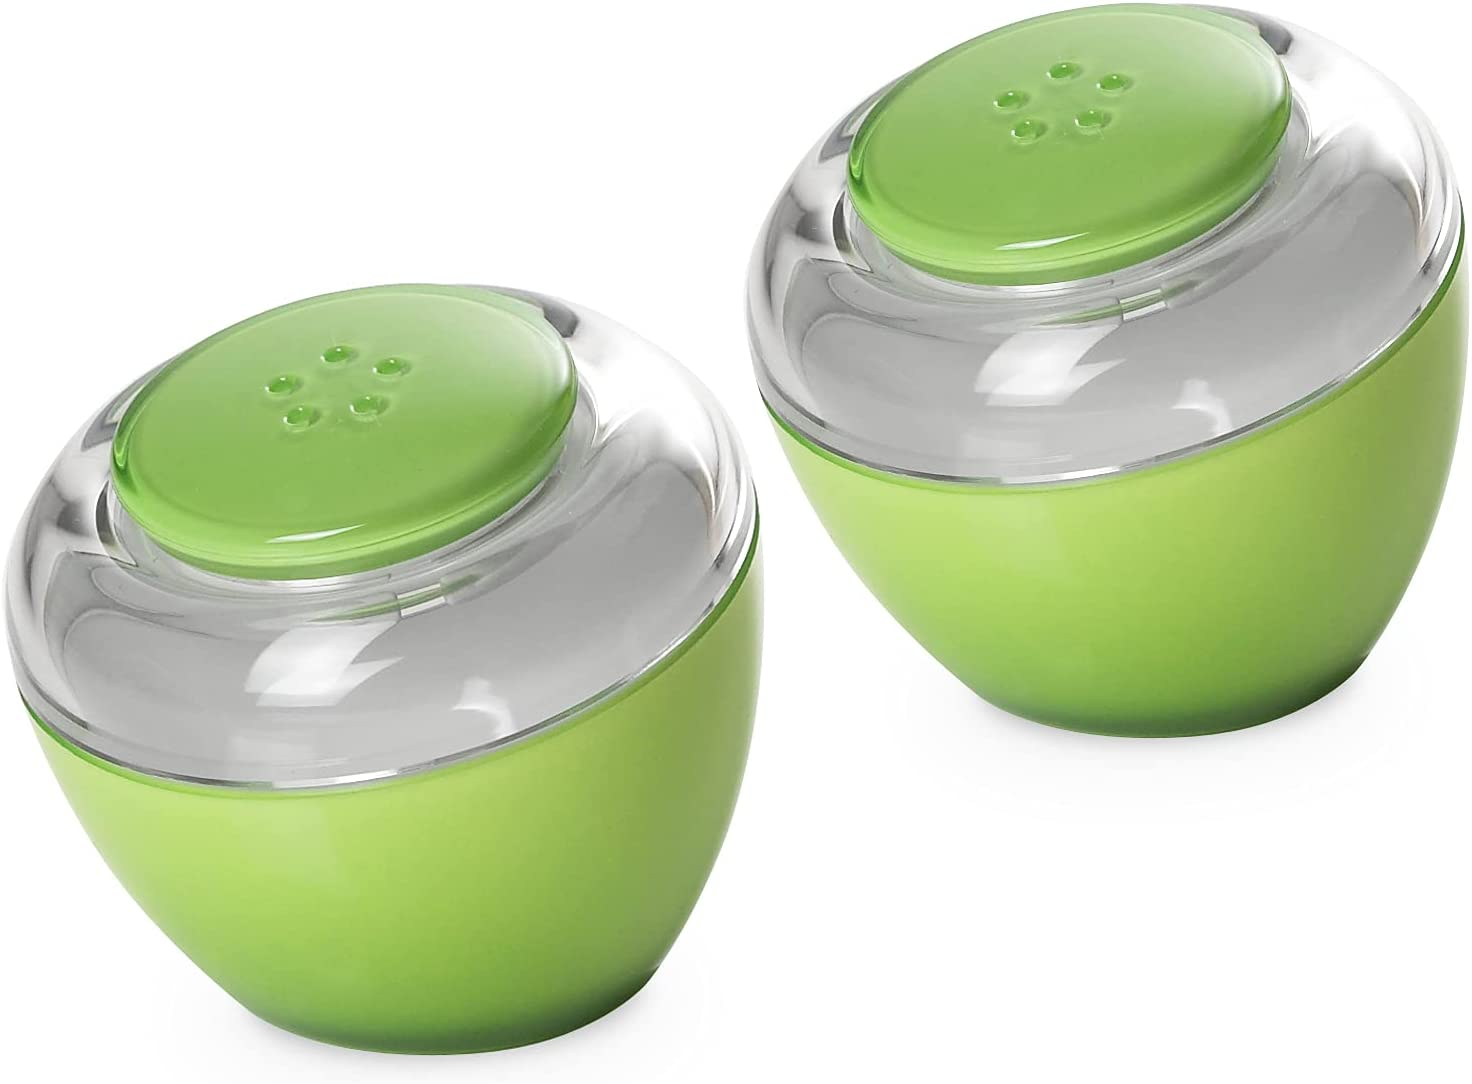 Omada Salt and Pepper Shakers: Acrylic Spice Limited time for free shipping – Set C Department store Shaker